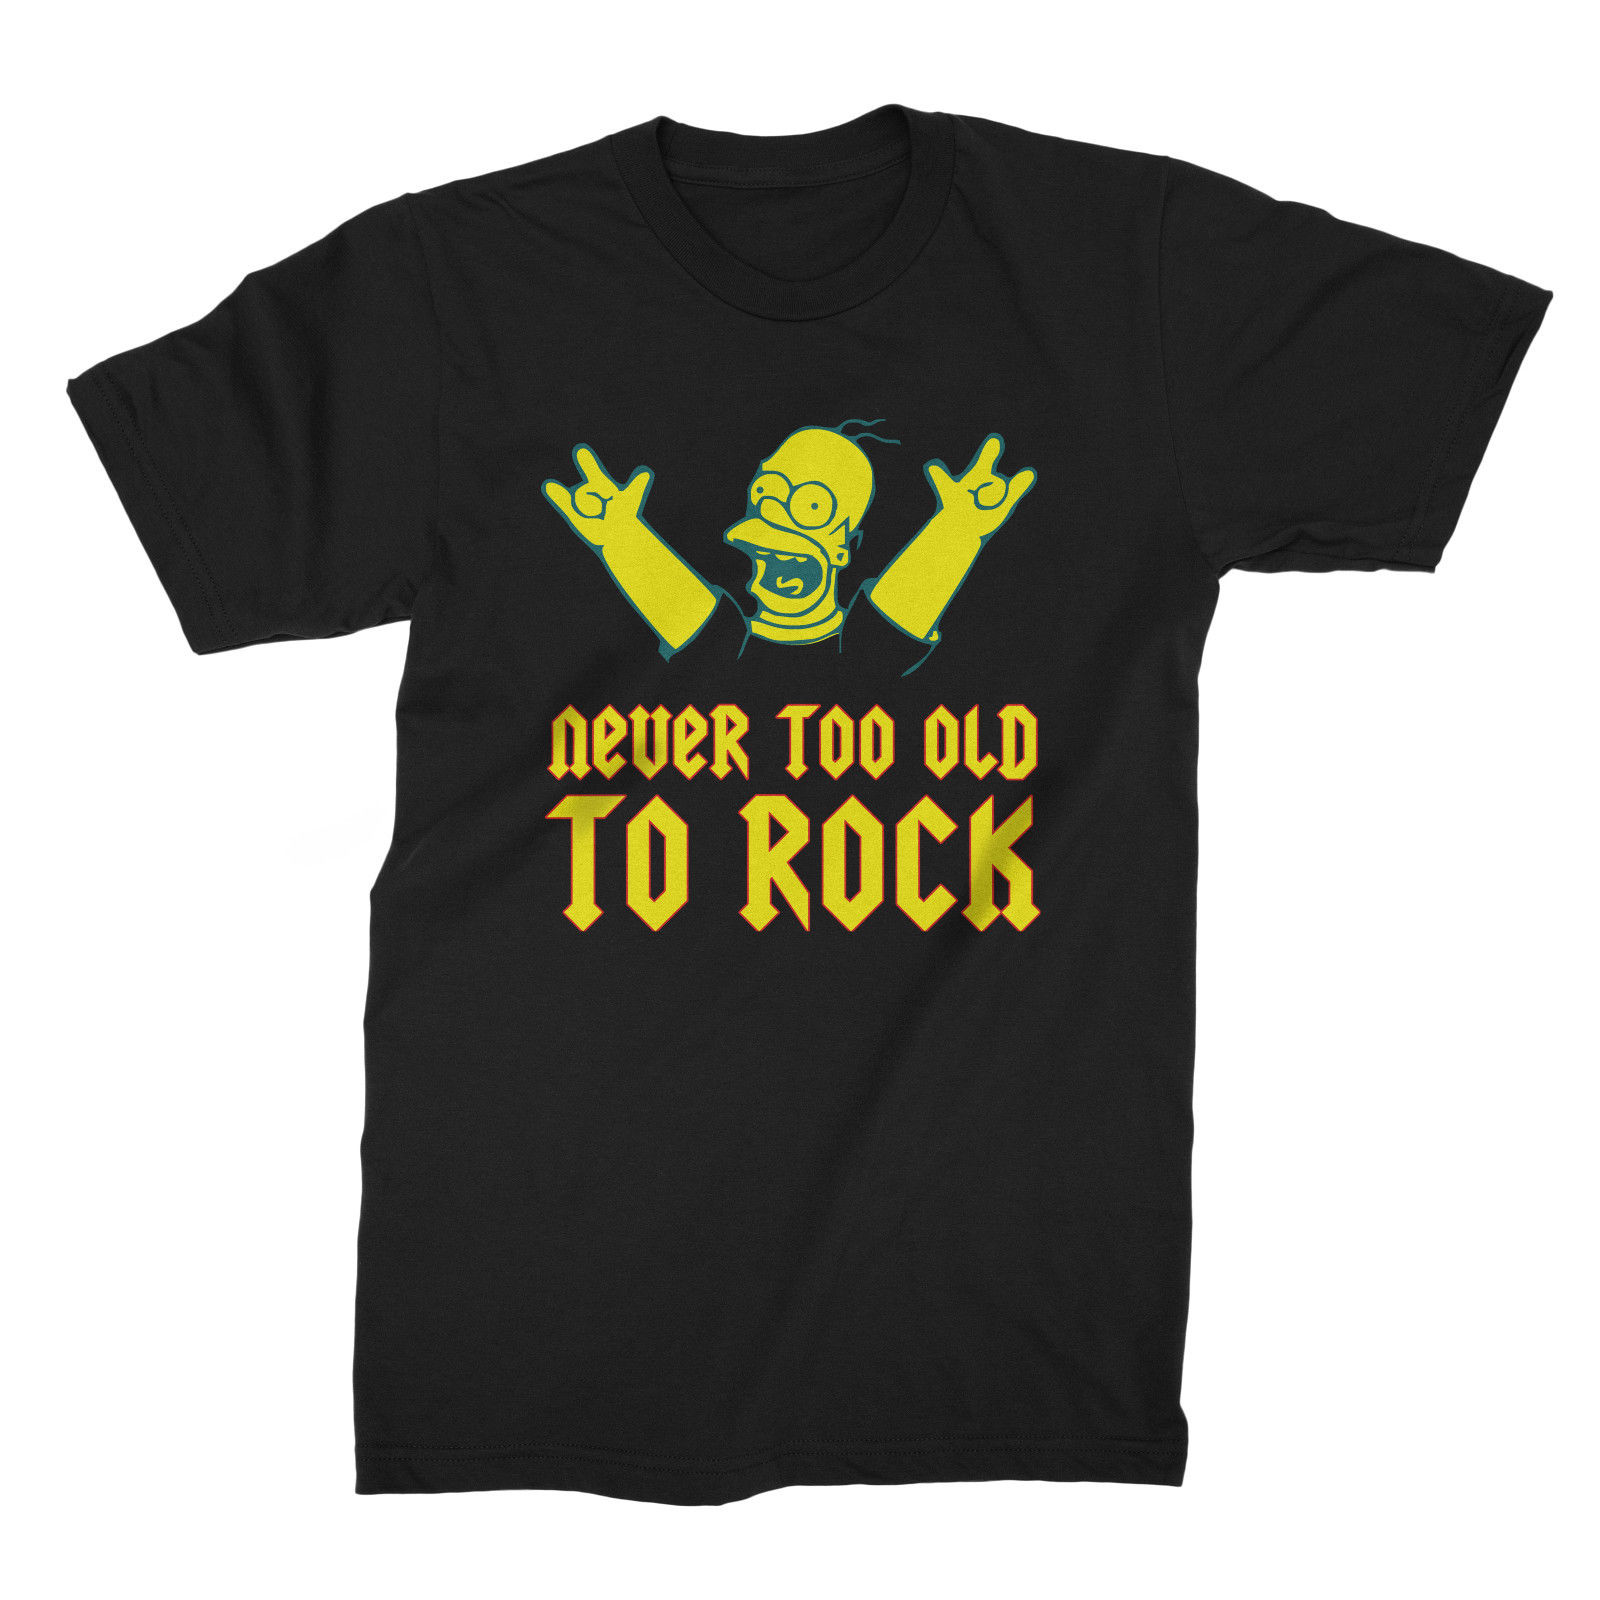 New Funny Men T-shirt Never Too Old To Rock Joke Gift Father`s Day, Birthday